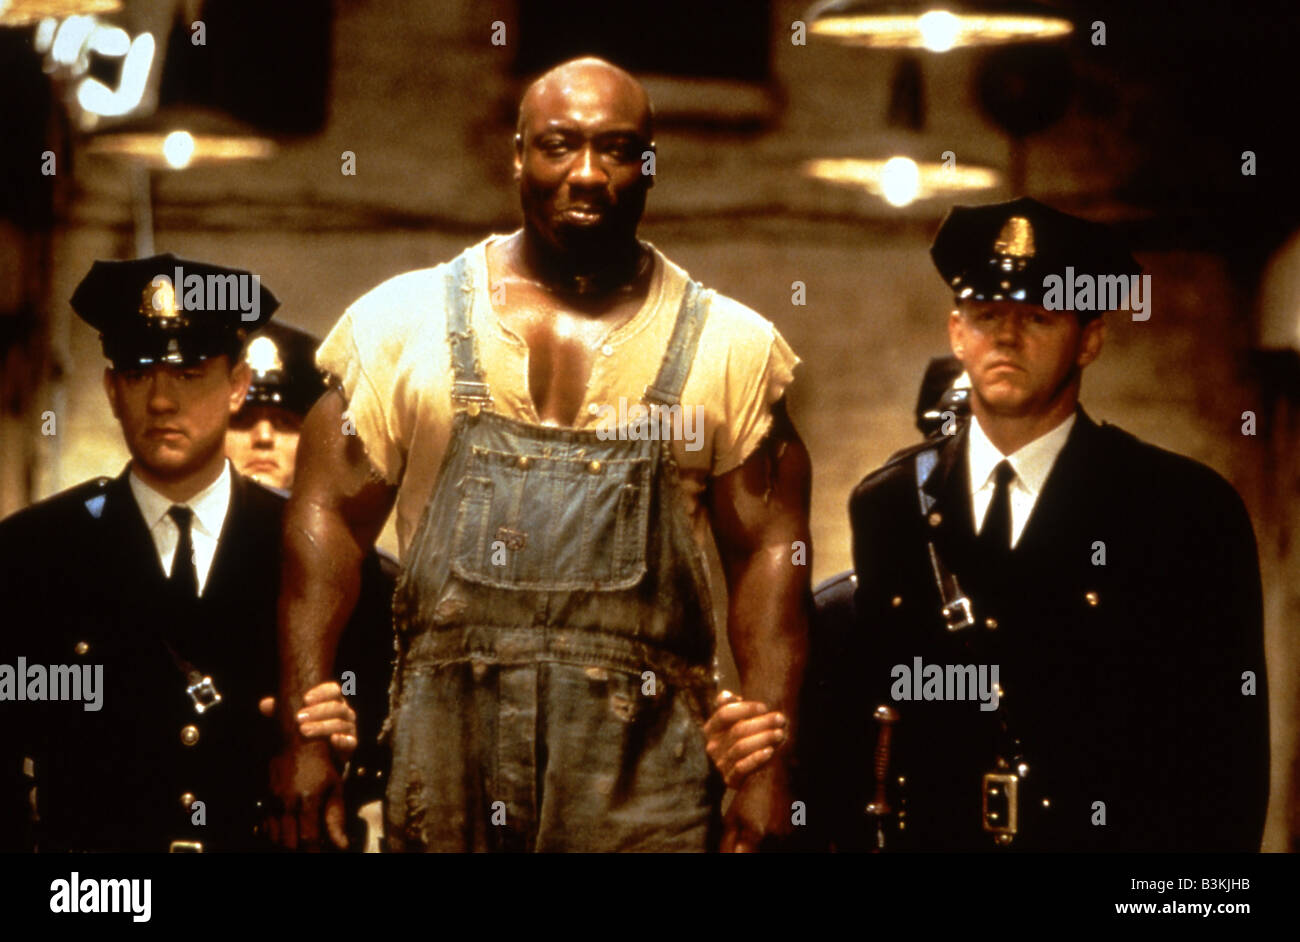 THE GREEN MILE 1999 Warner film with David Morse as the prisoner - Stock Image